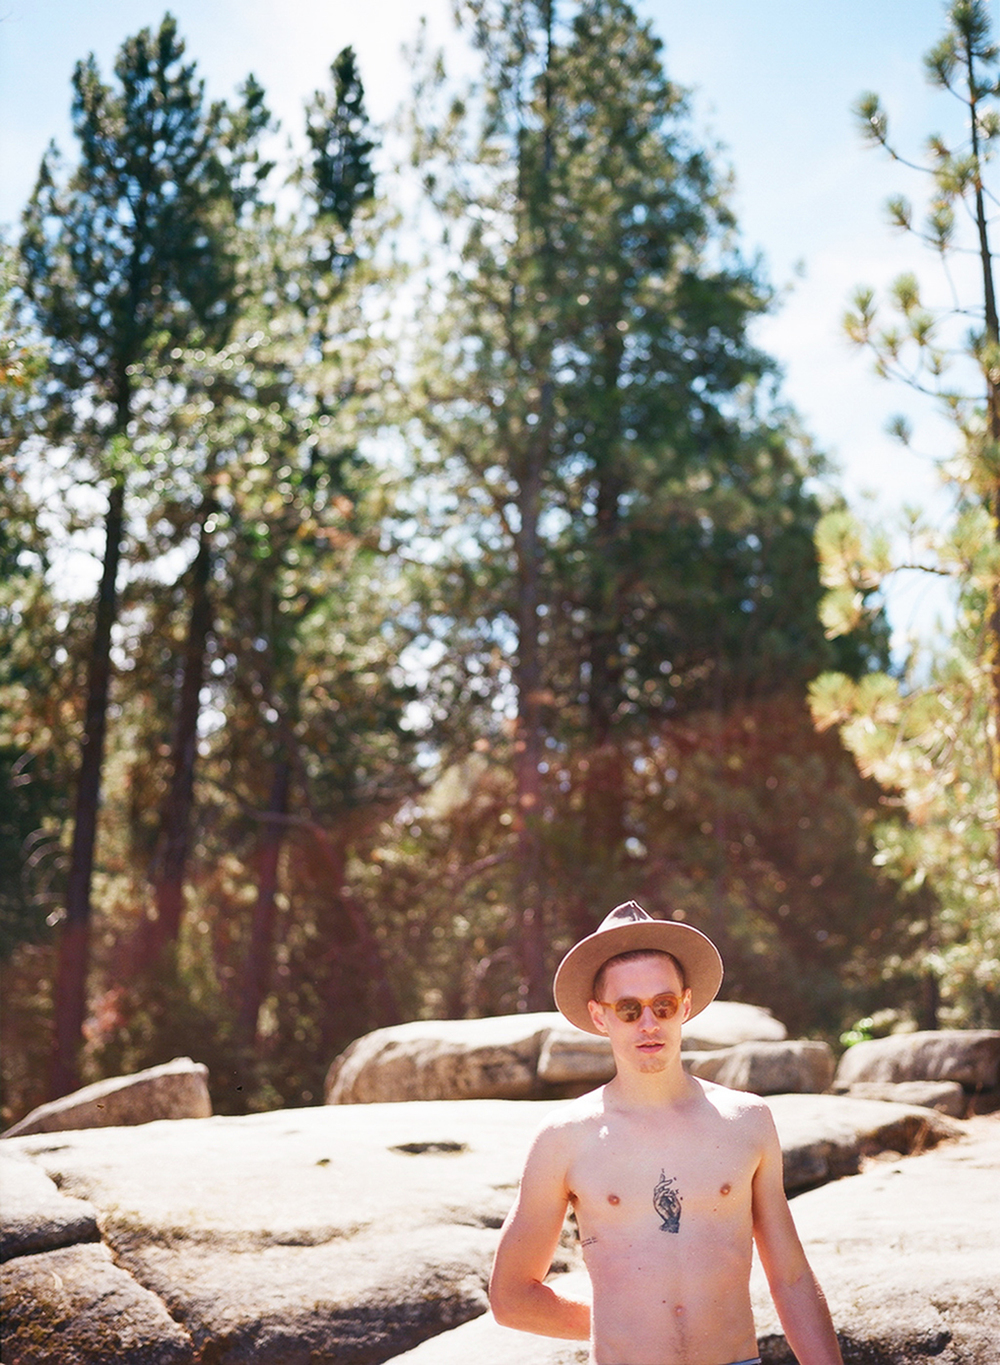 Scott in Kings Canyon, California, 2013